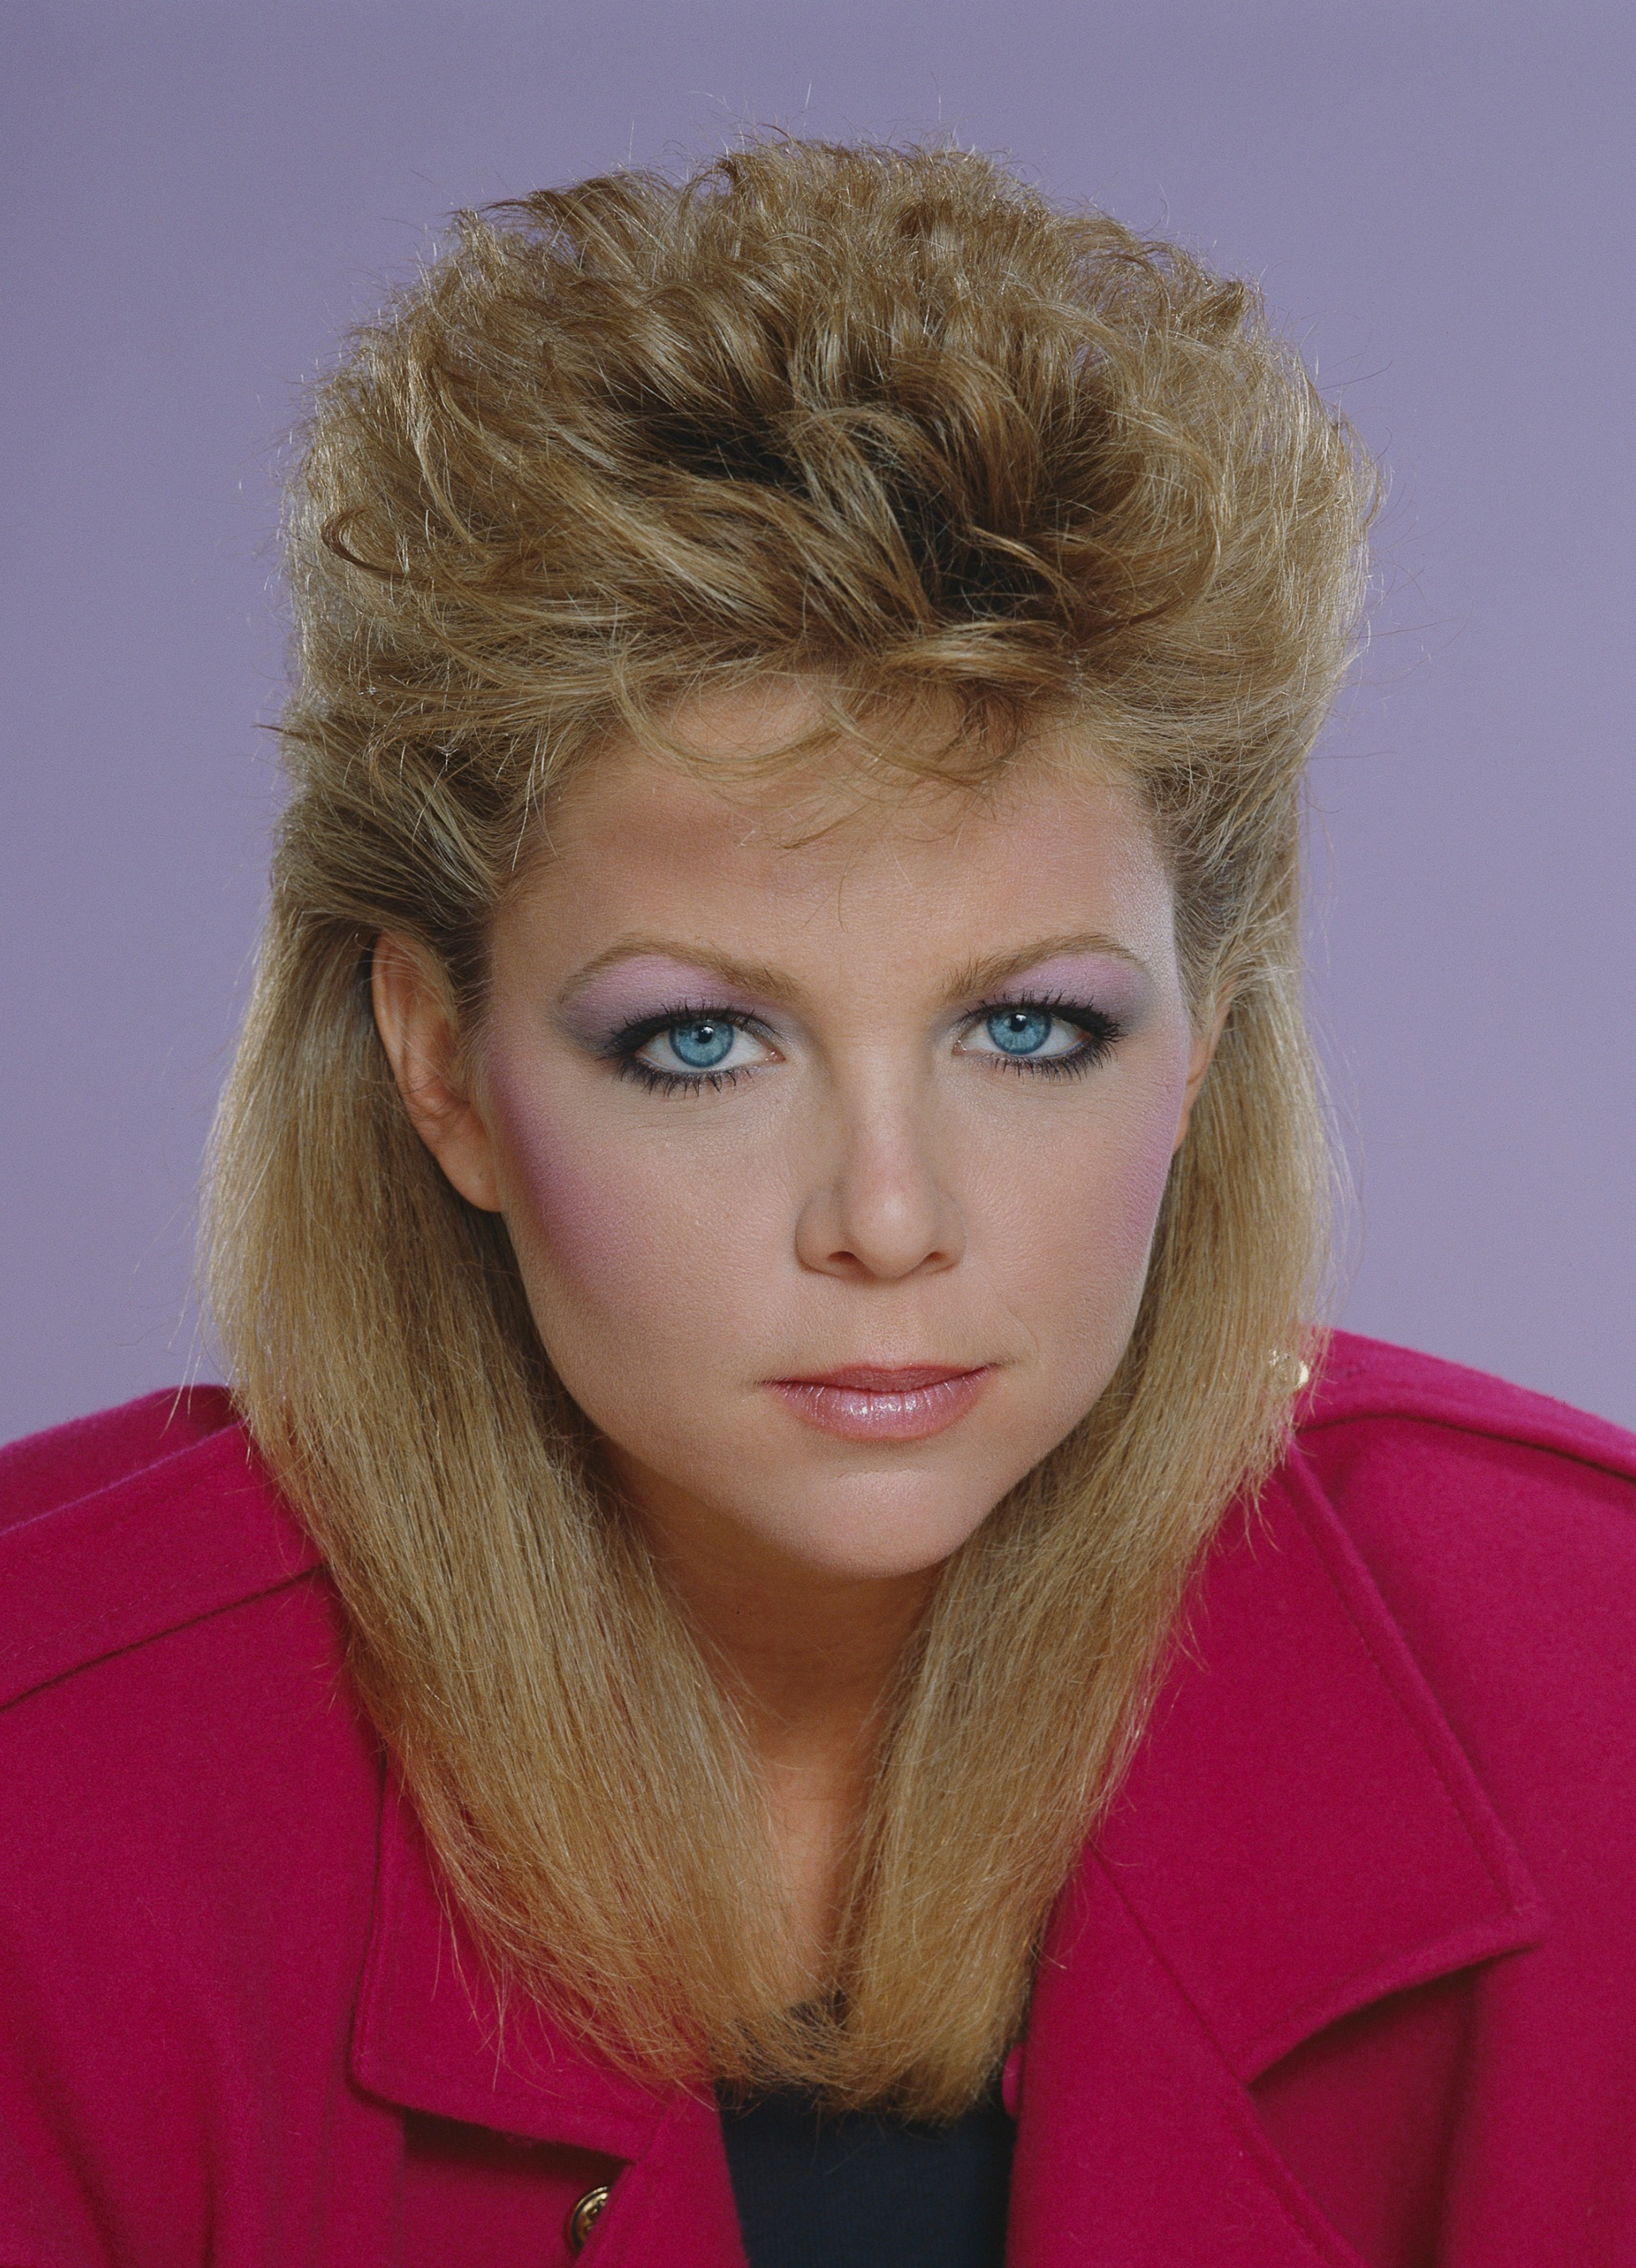 Marvelous Bad 3980S Beauty Trends Embarrassing Eighties Hairstyles And Hairstyle Inspiration Daily Dogsangcom